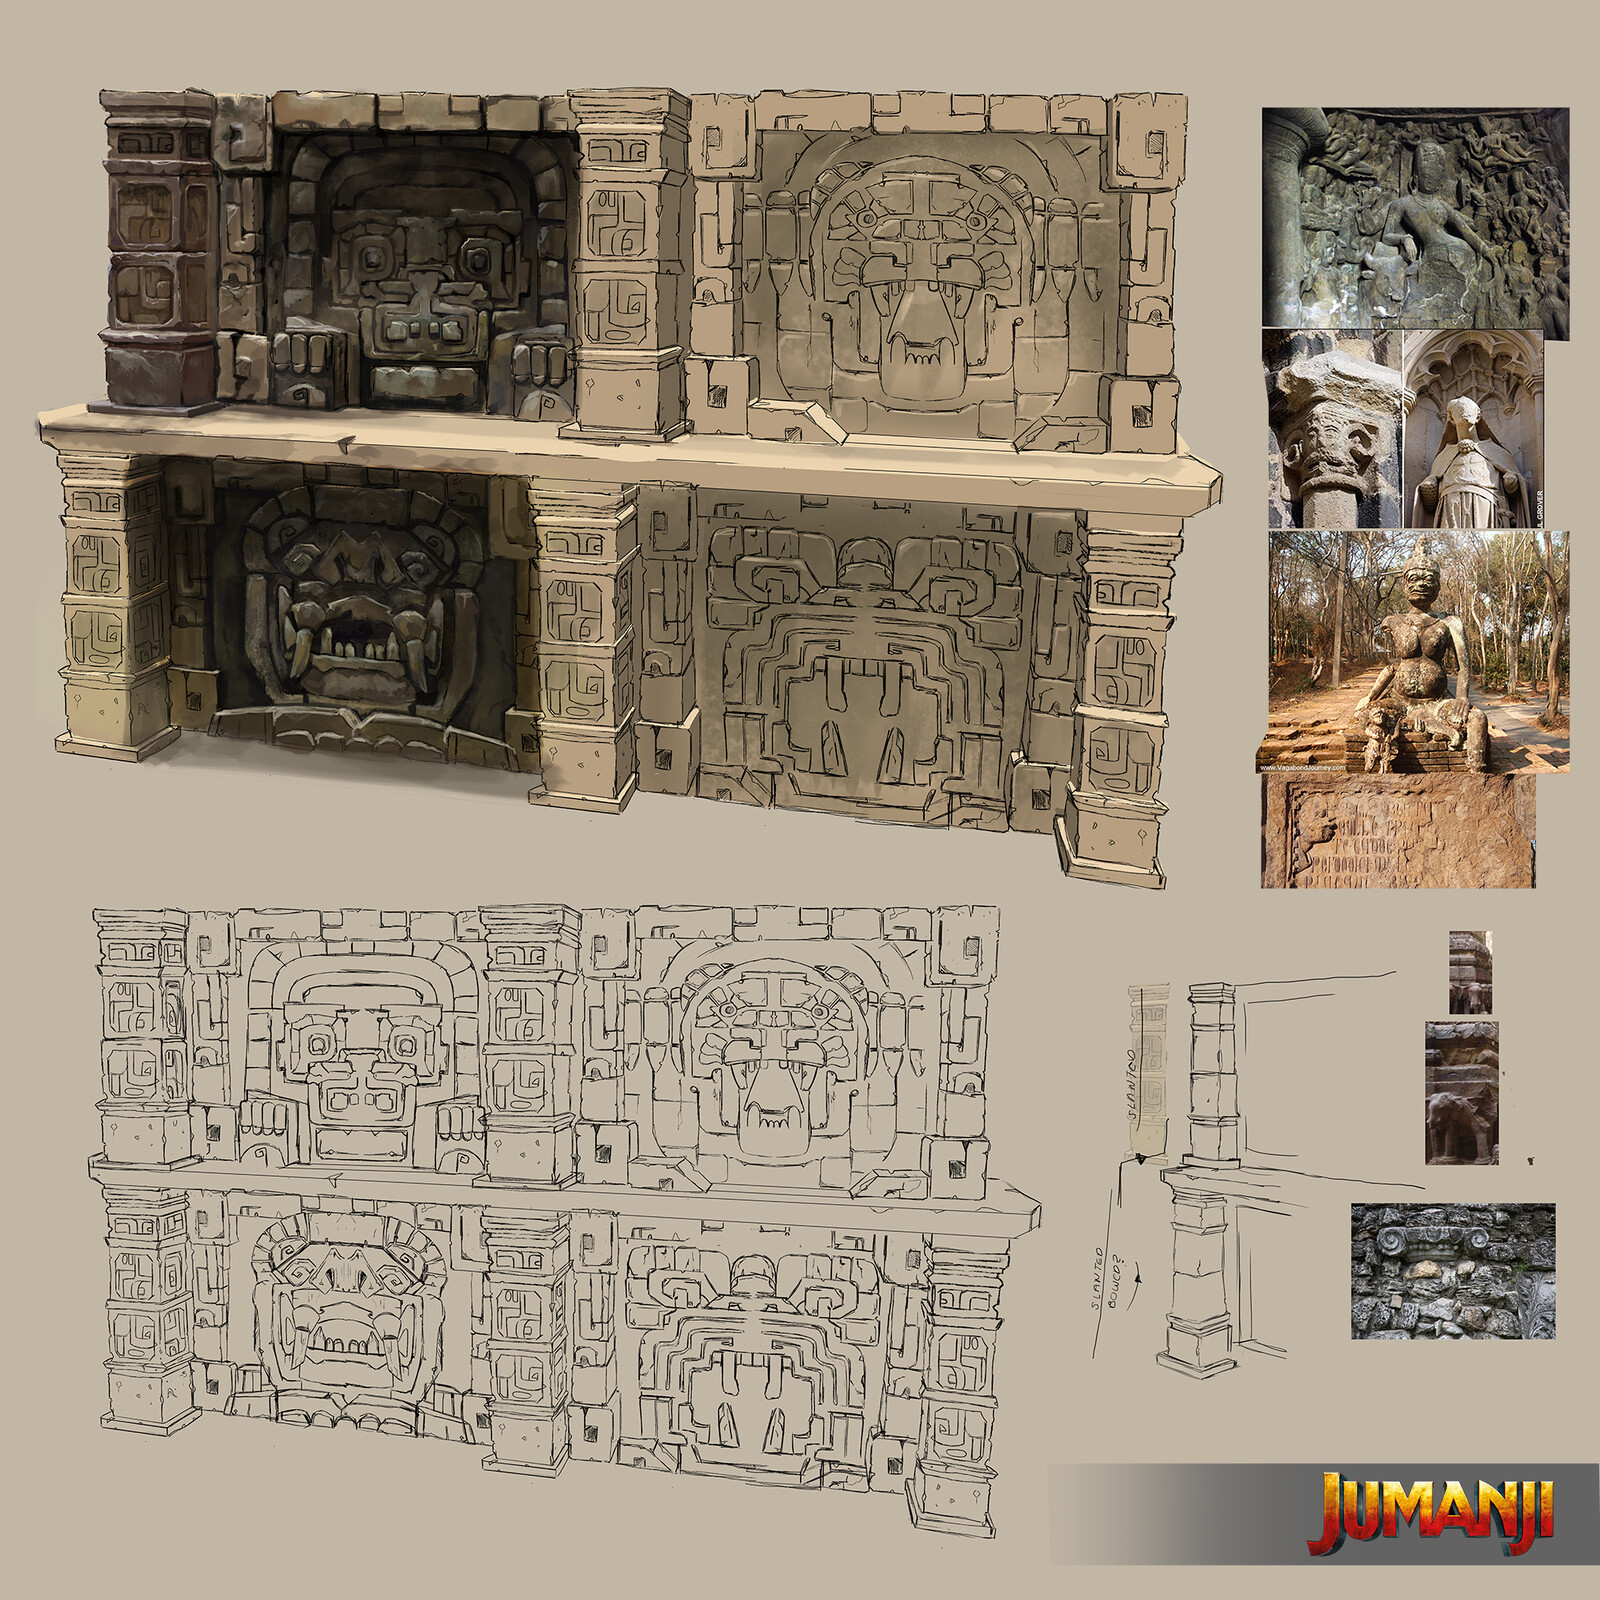 Jumanji design work